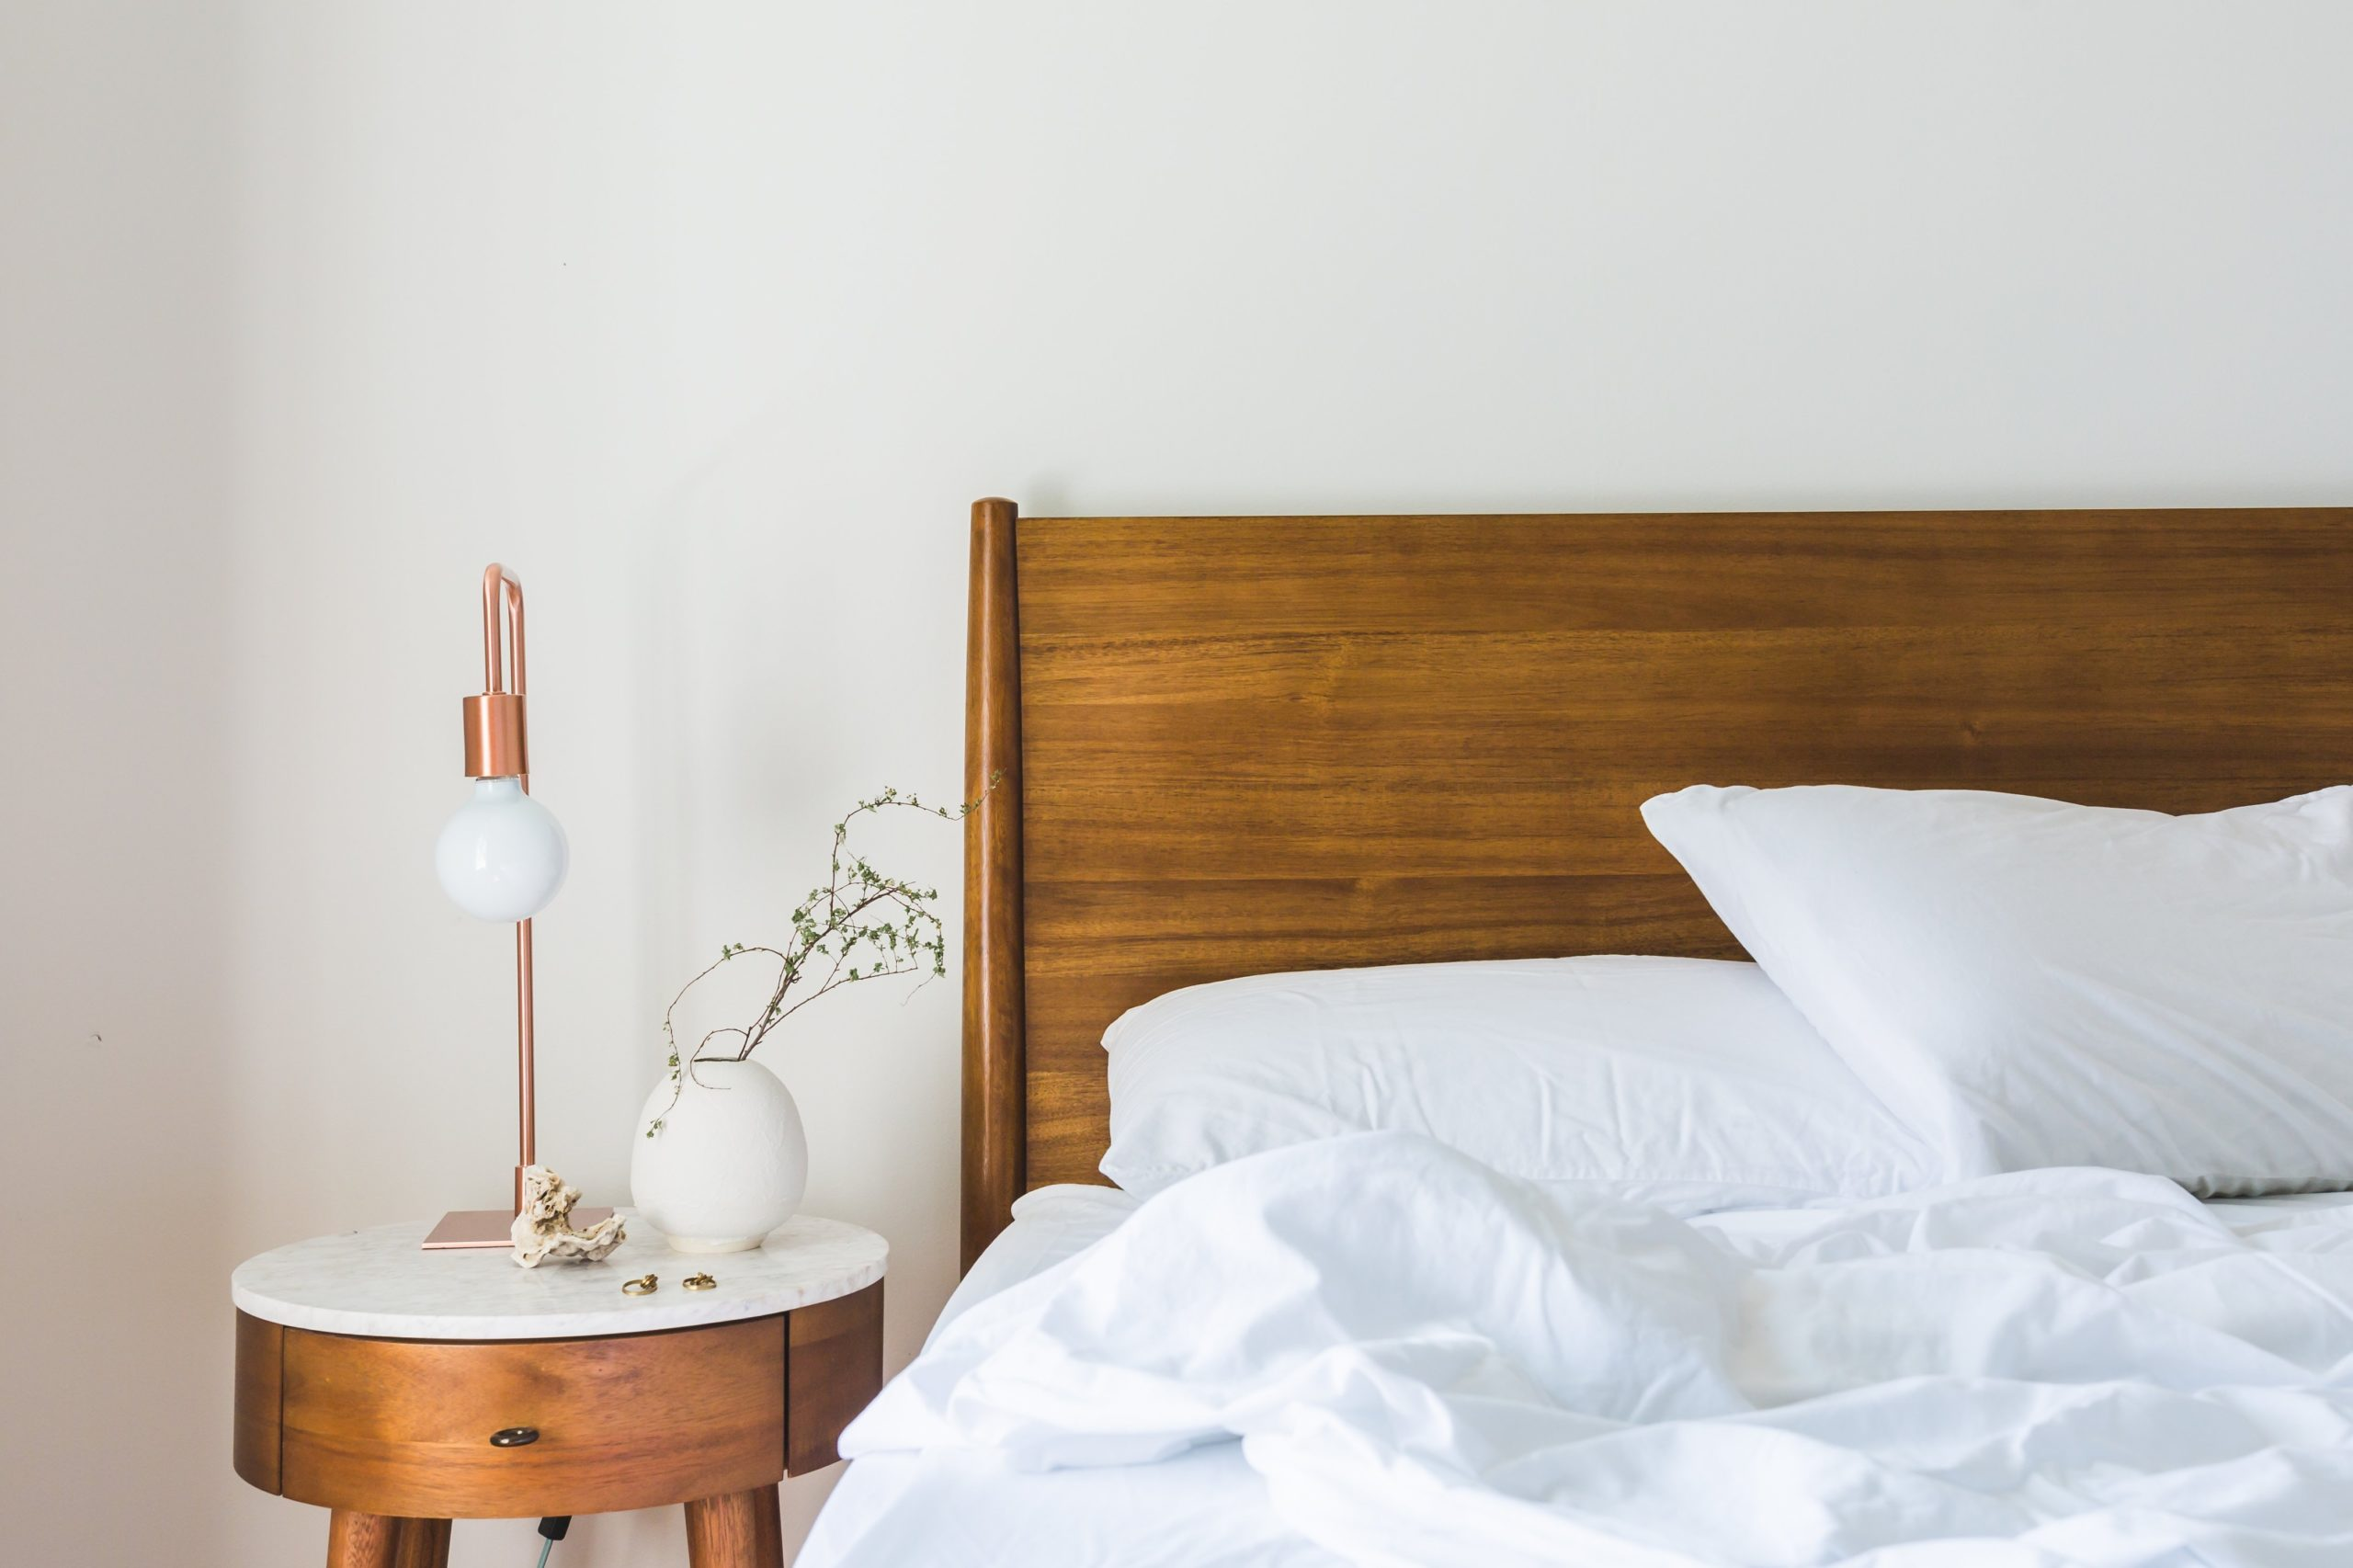 The Pros and Cons of Staying at an Airbnb